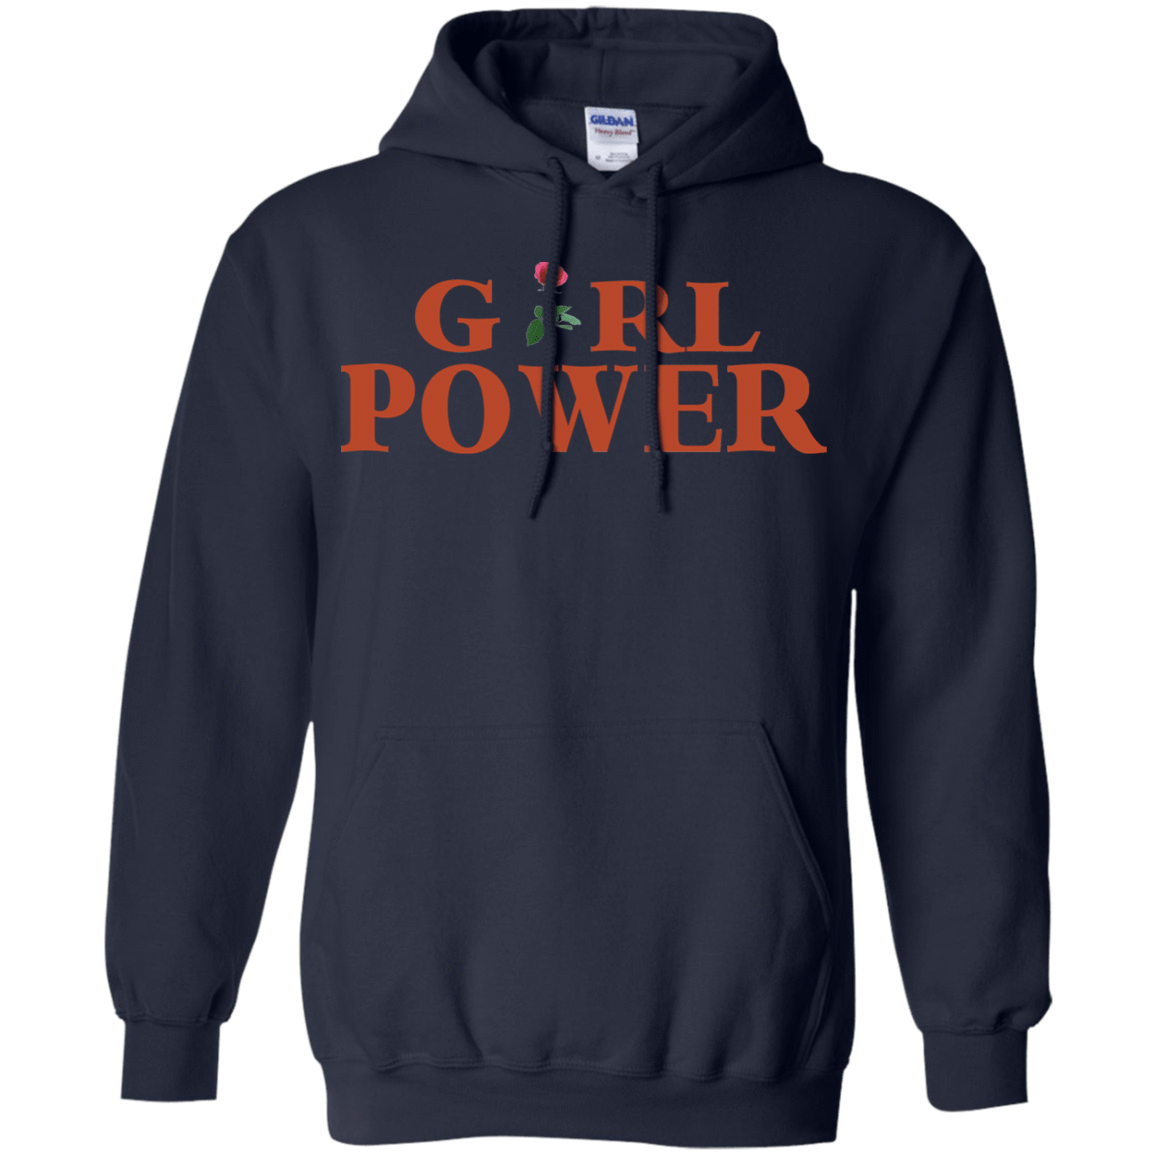 Girl Power Yellow 541-4742-73890288-23135 - Tee Ript